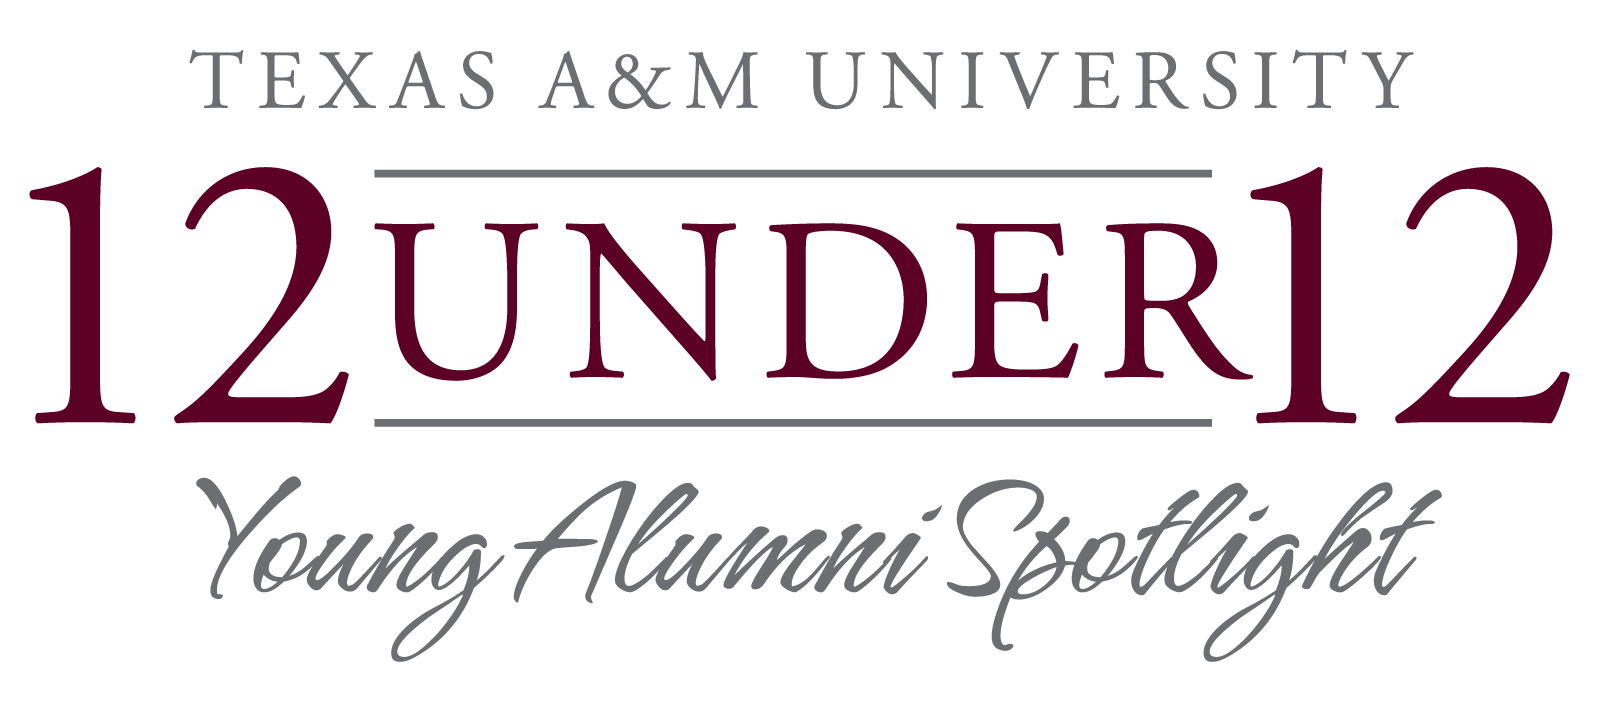 12 Under 12 Young Alumni Spotlight